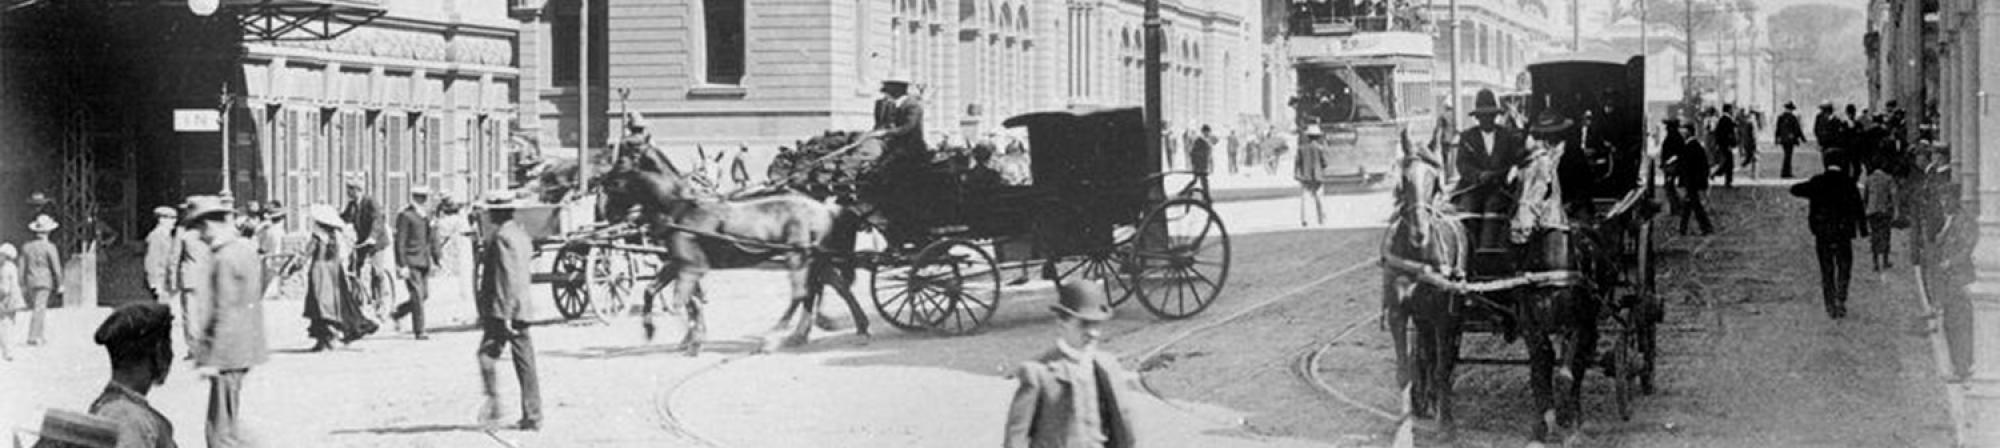 Black and white photograph of New Adderley Street, Cape Town (c.1914)